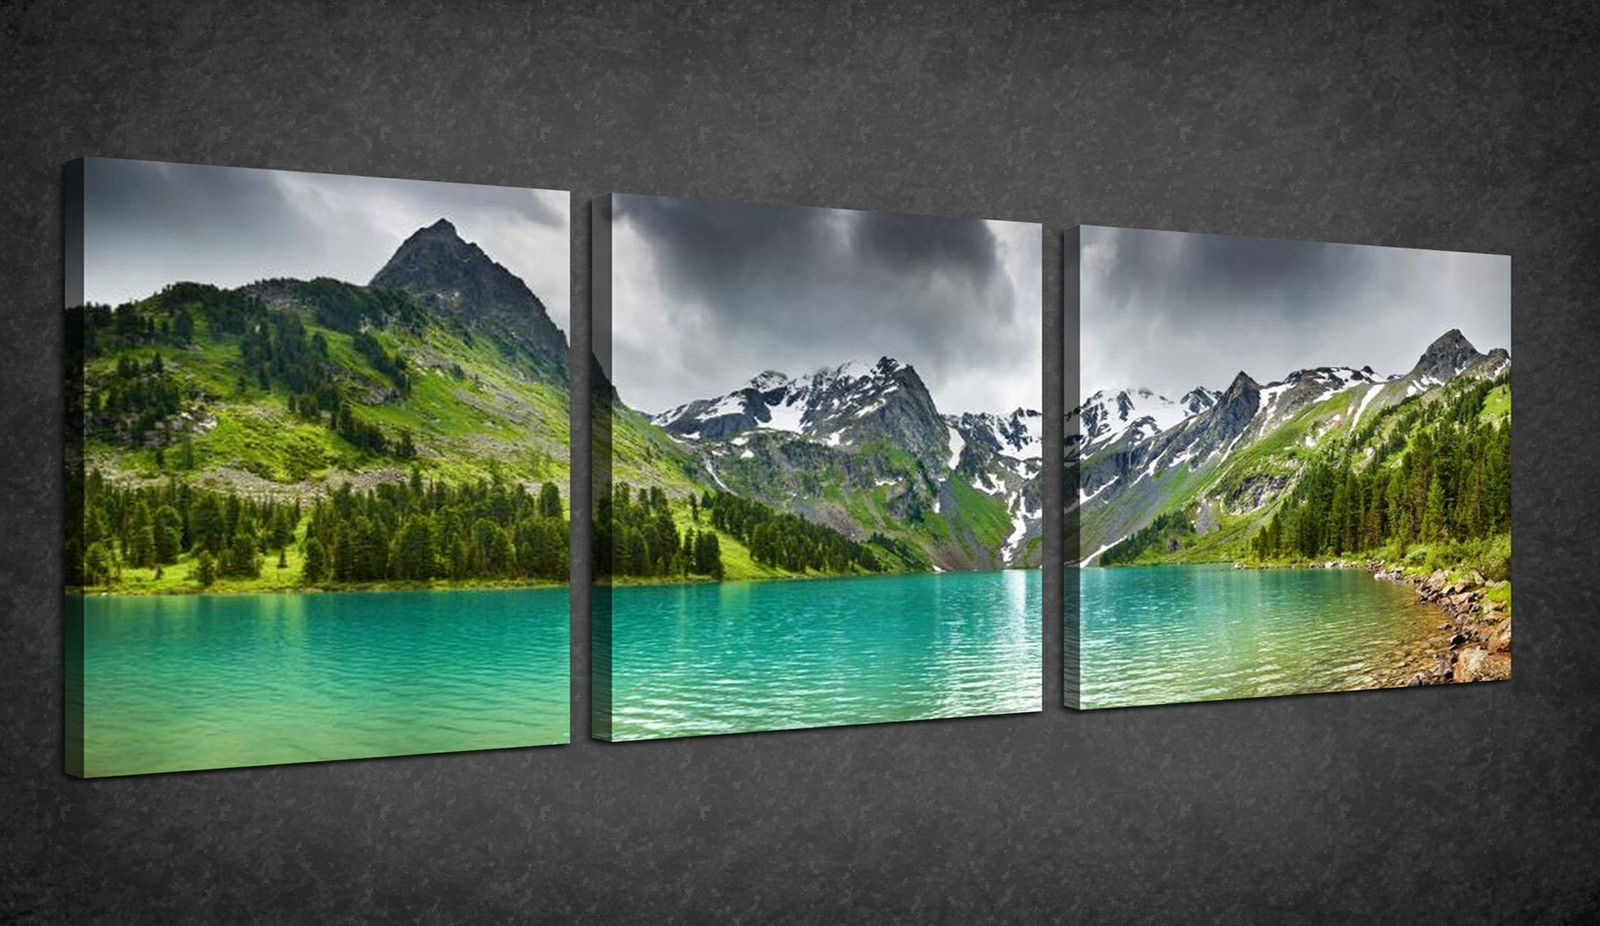 Wall Art Designs: Appealing Panoramic Canvas Wall Art Standing With Regard To Most Up To Date Panoramic Canvas Wall Art (View 15 of 15)